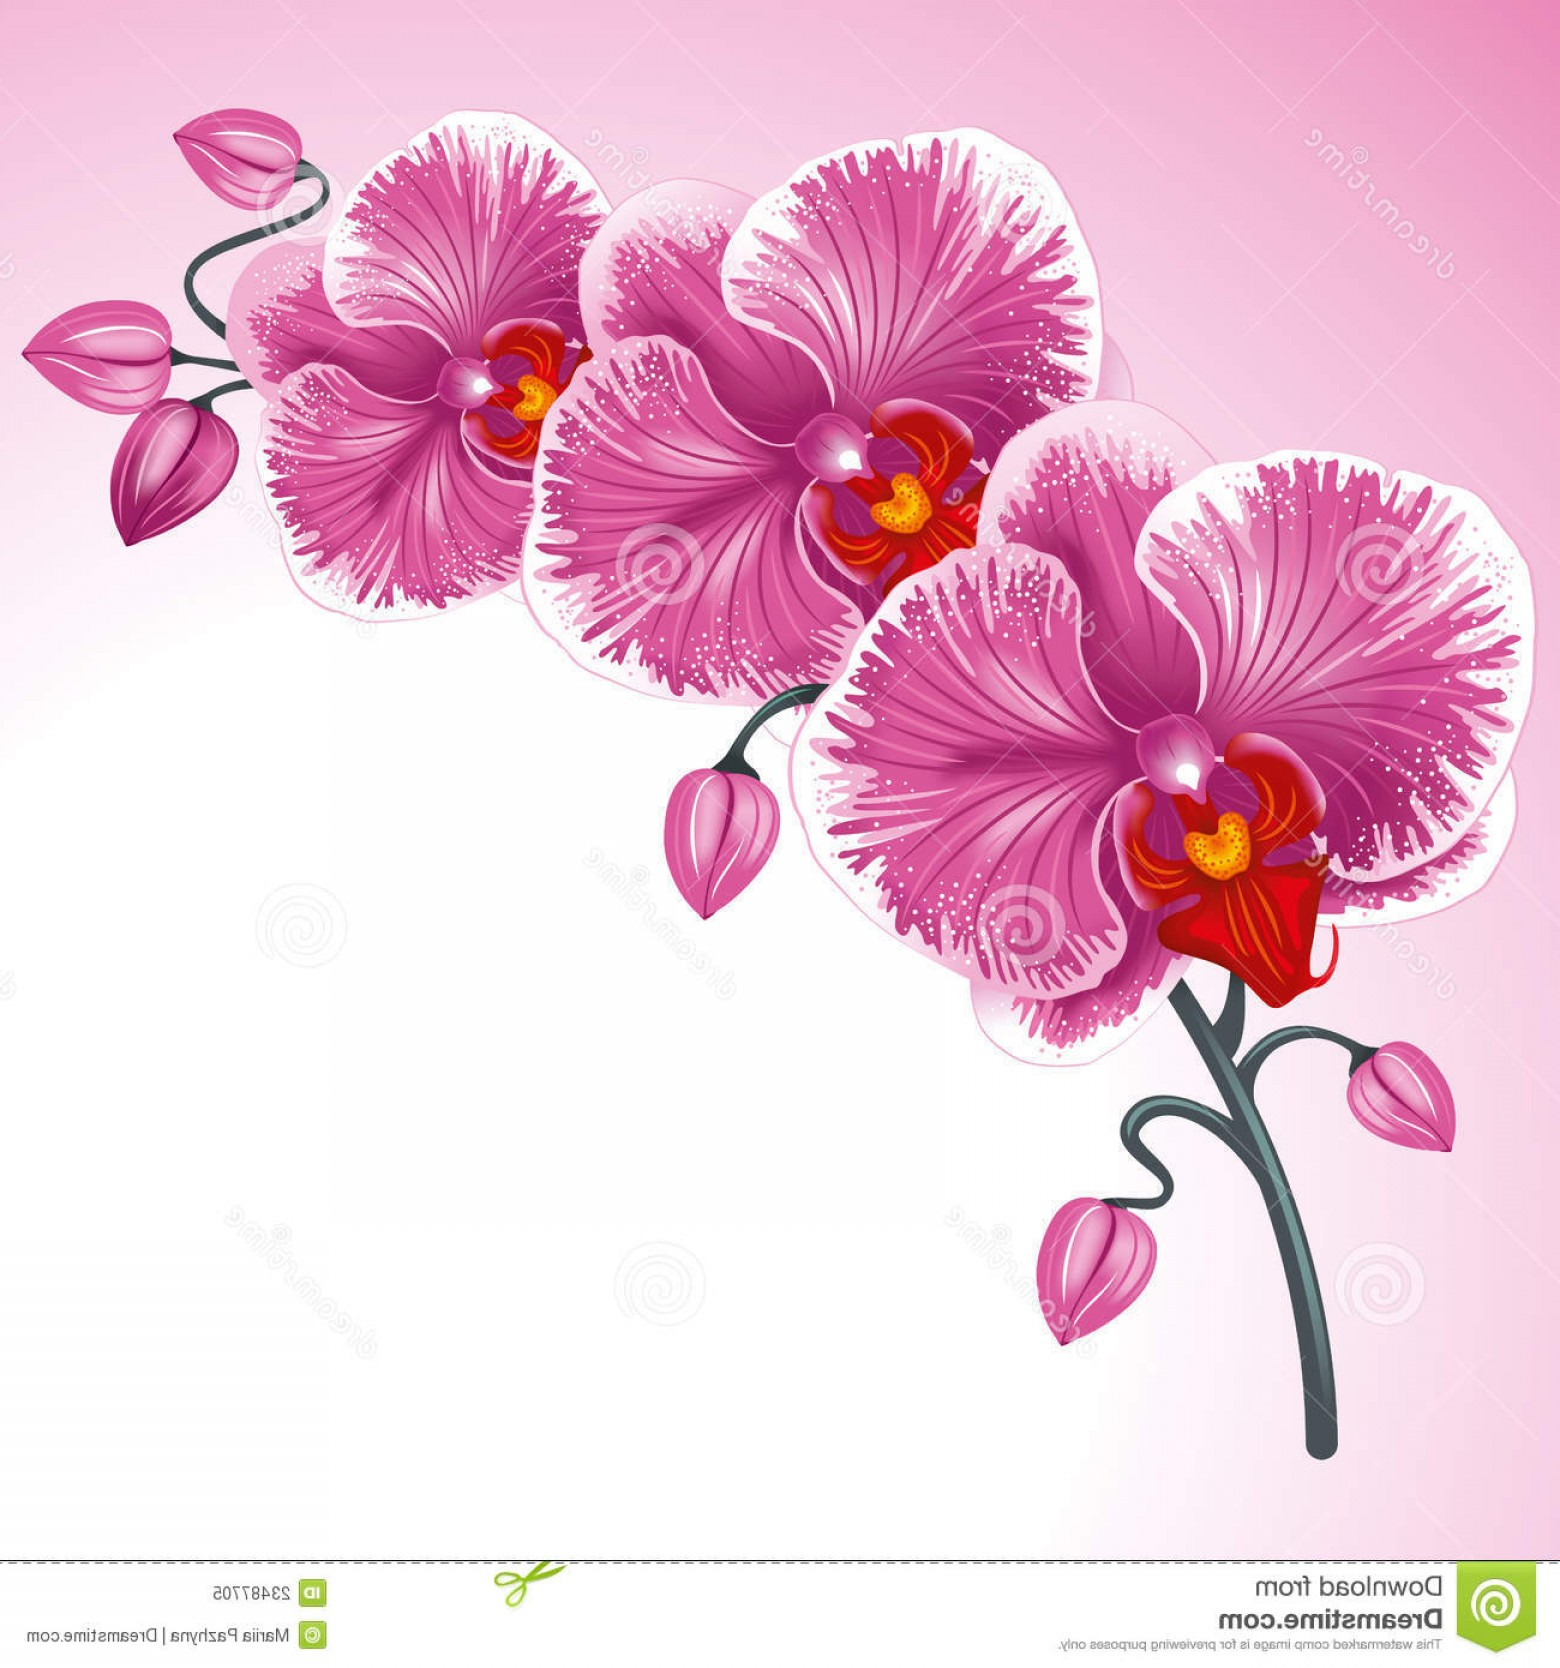 Purple Orchid Vector: Royalty Free Stock Photo Purple Orchid Image